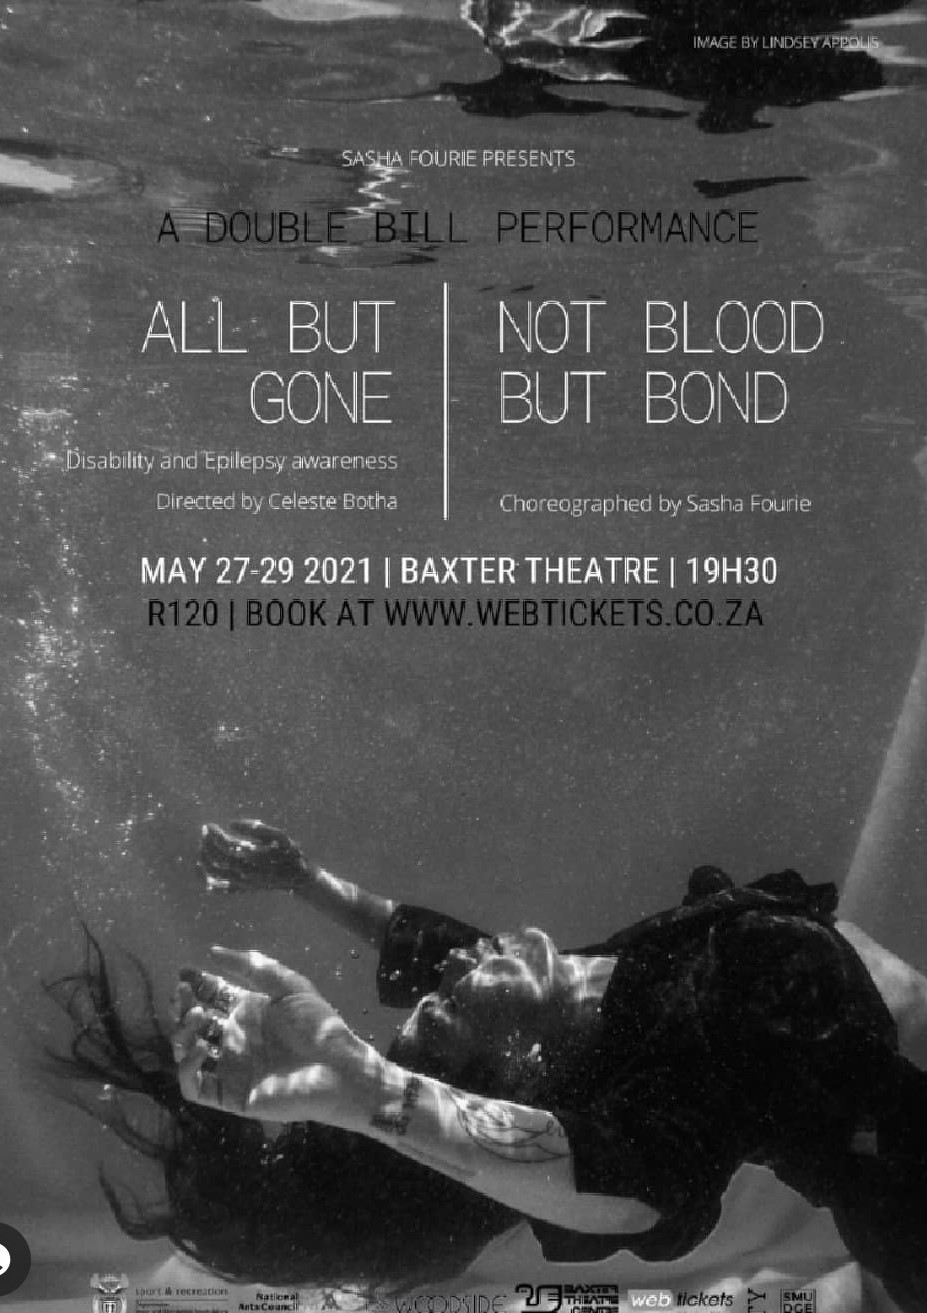 All but Gone | Not blood but bond